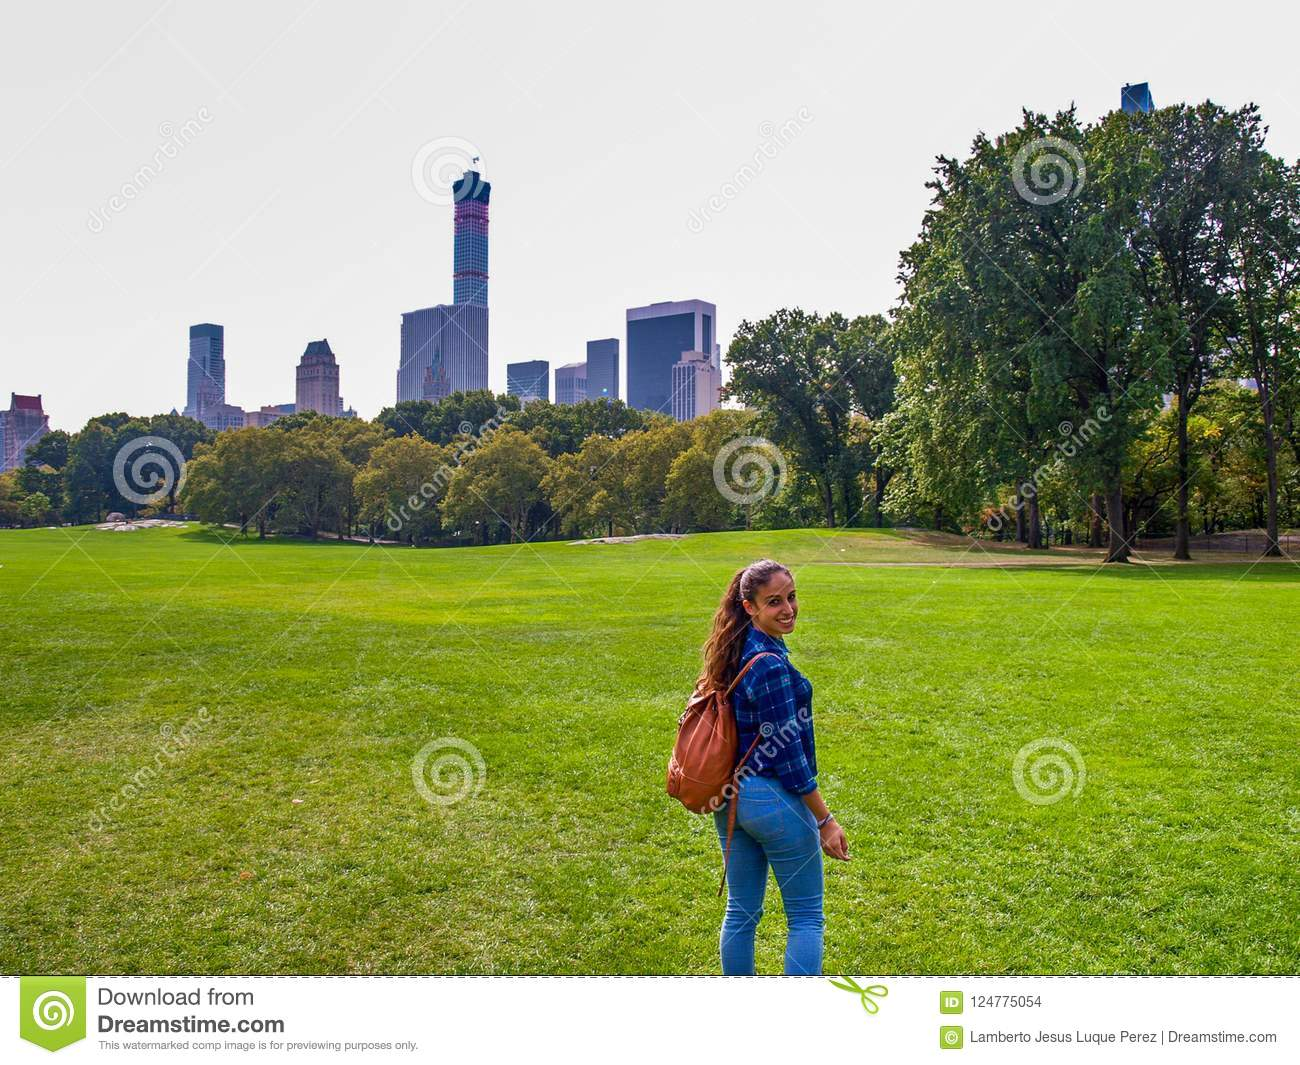 Young girl posing at Sheep Meadow in Central Park, NY, New York